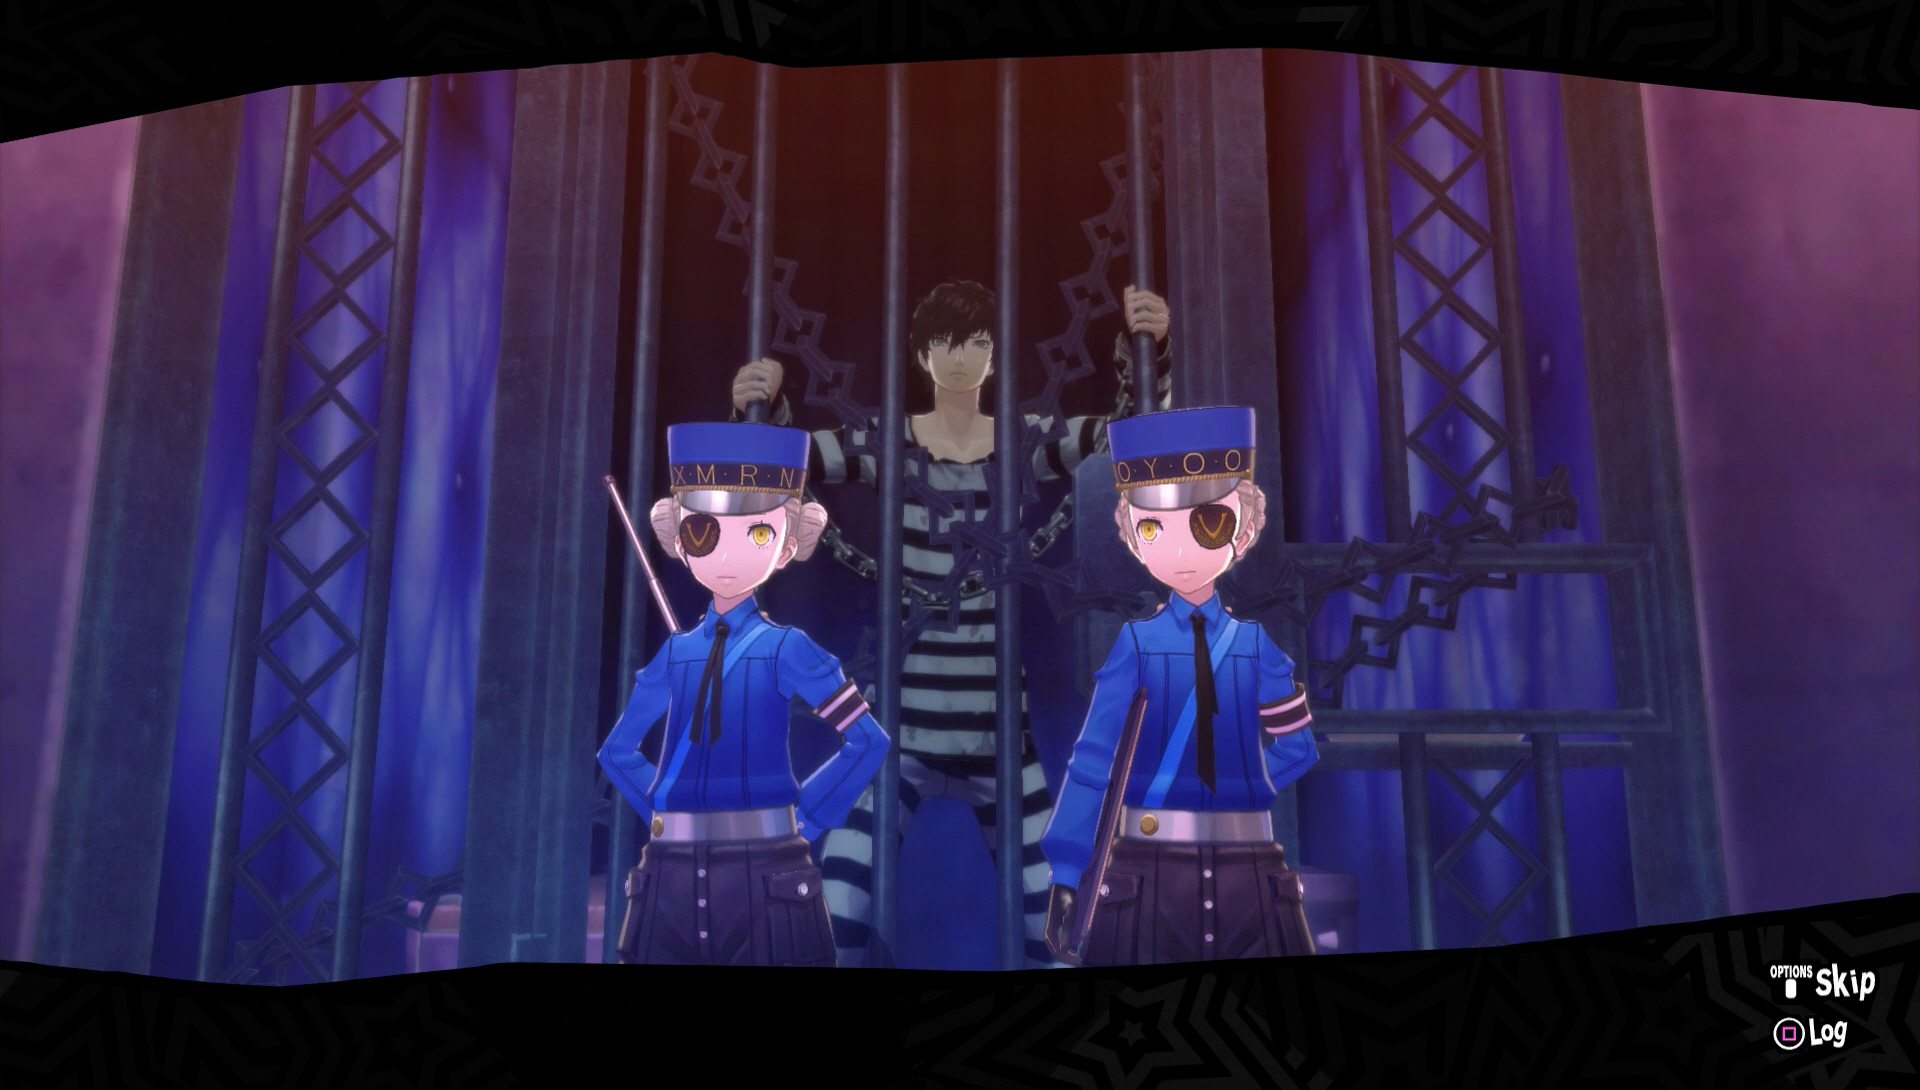 New Velvet Room English Video and Screenshots for Persona 5 ...